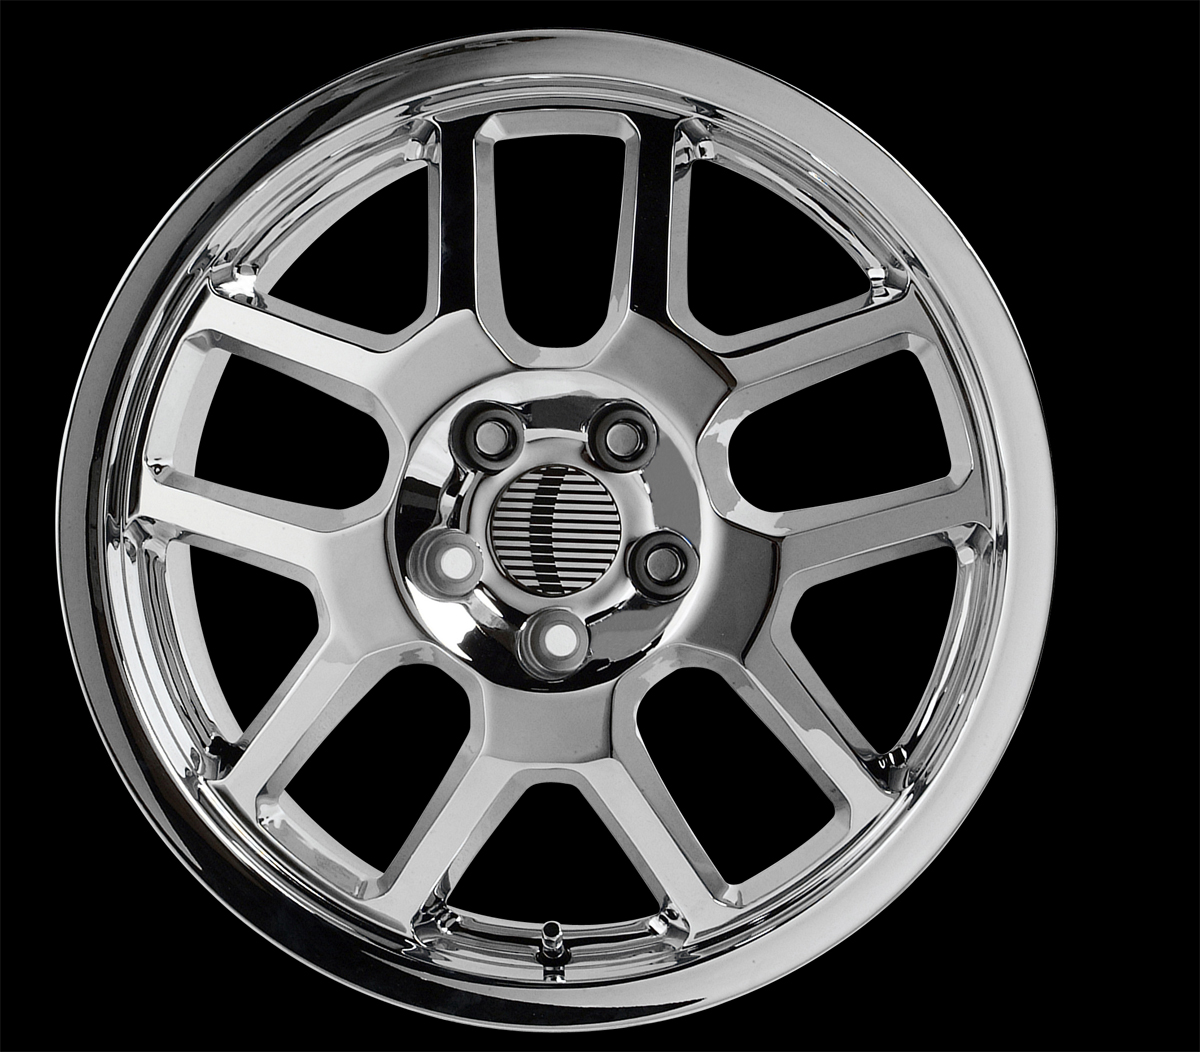 "COBRA 310 (V1146) CHROME - 5 Lug 05-13 (sizes available 17"")"